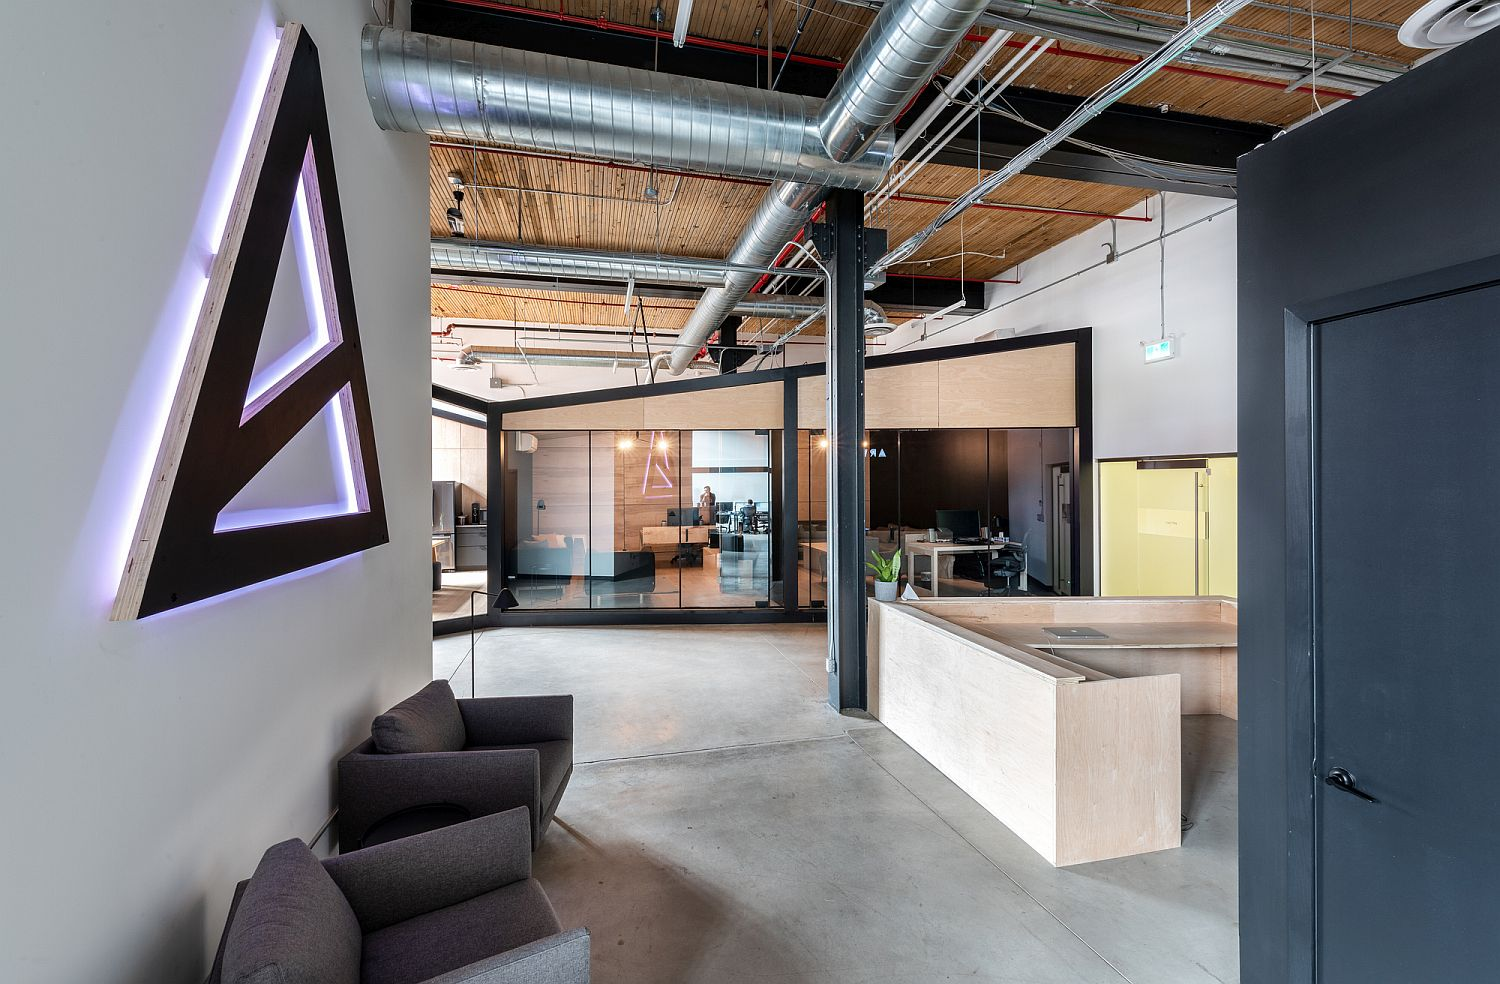 Industrial appeal coupled with modernity inside the office